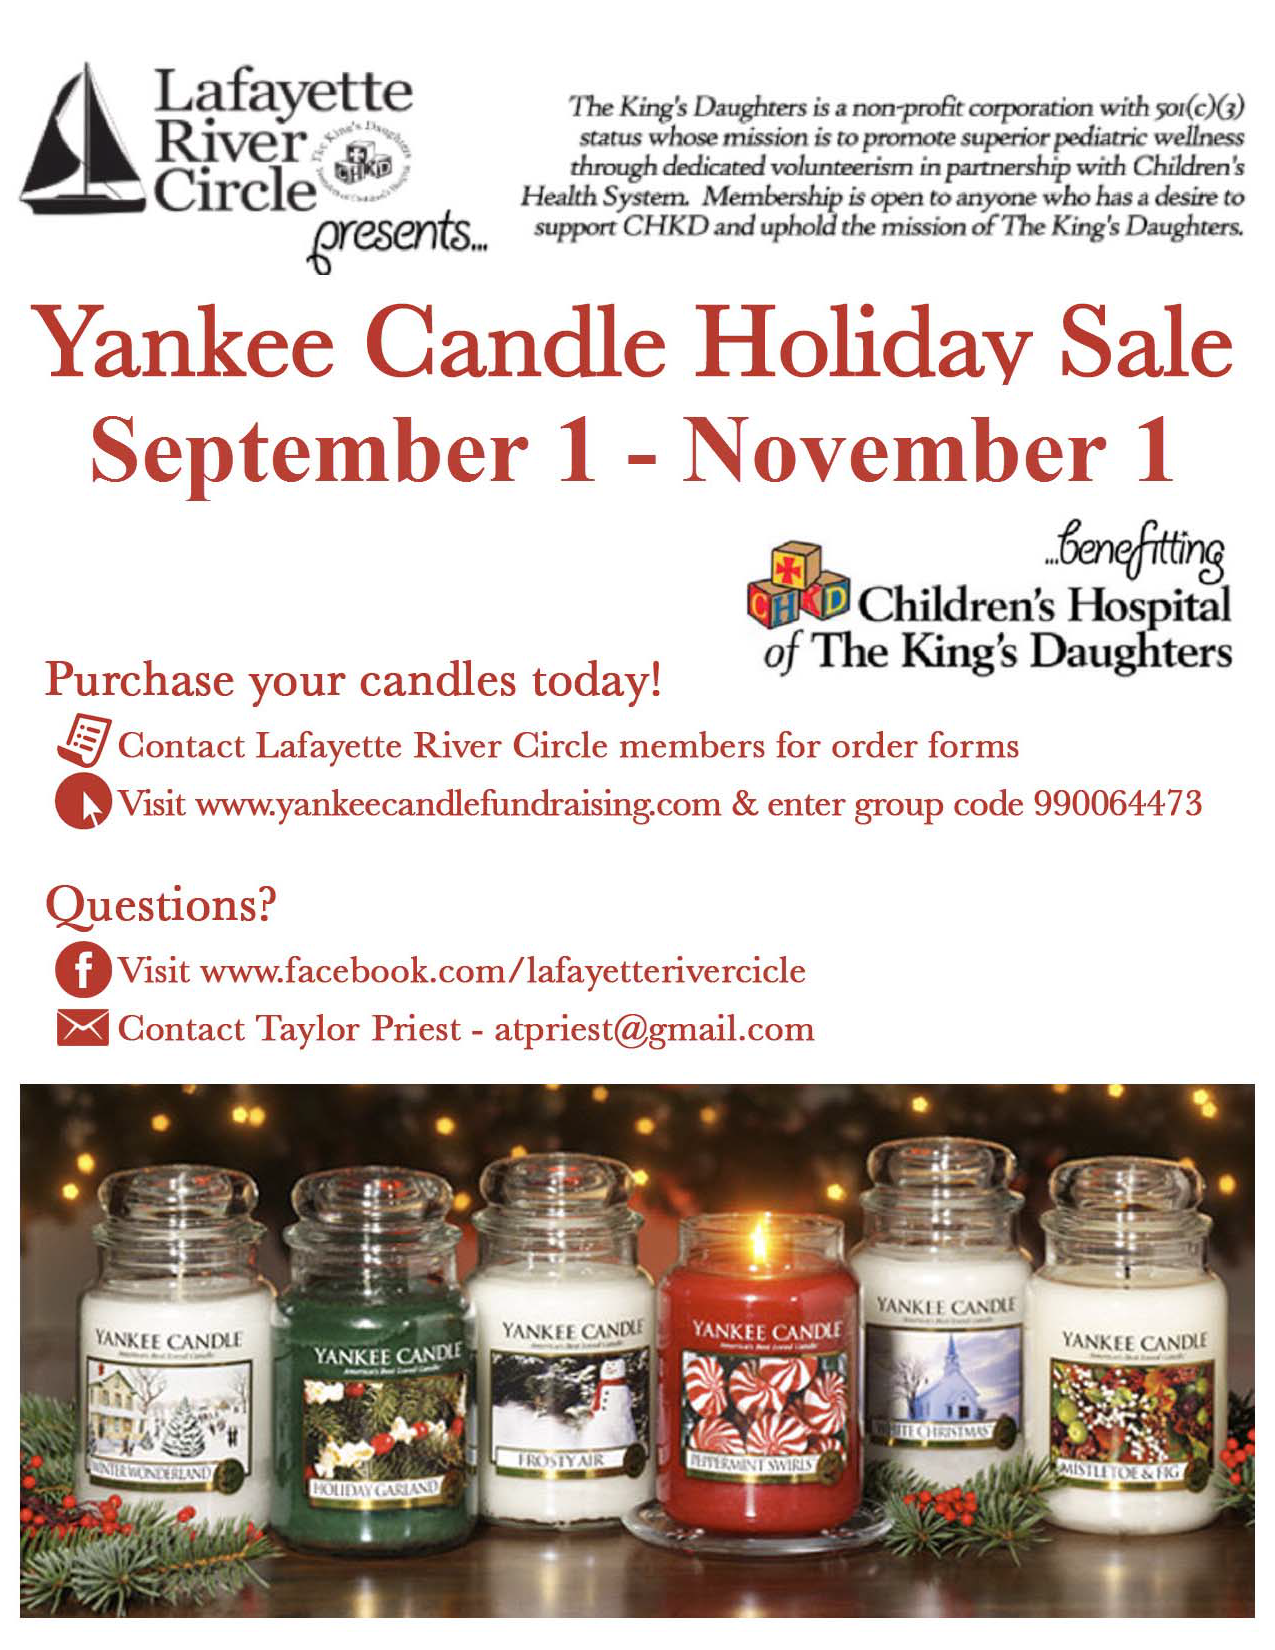 Yankee Candle Fundraiser – Lafayette River Circle